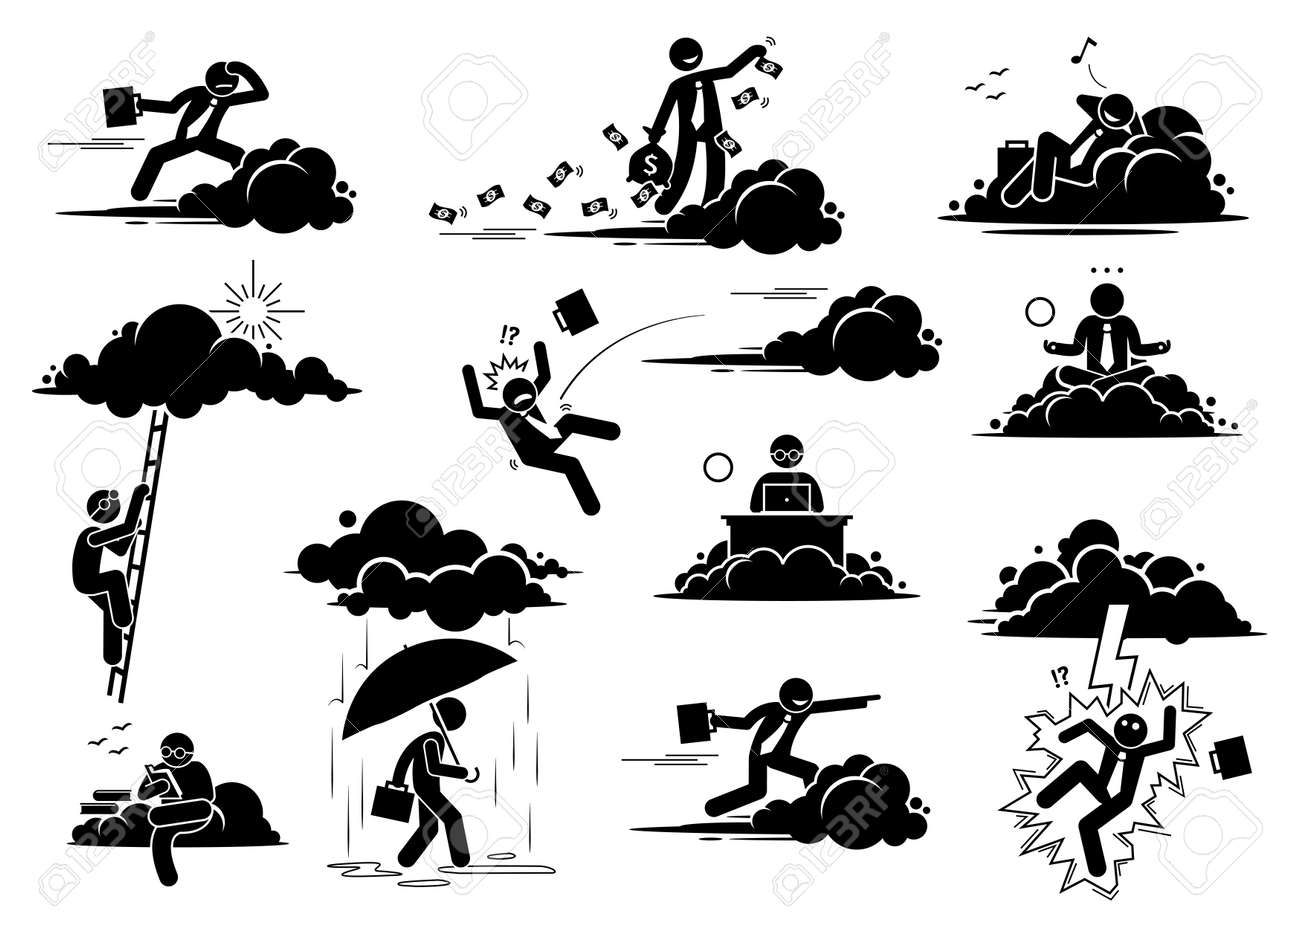 Businessman working in the cloud or sky. Vector illustrations of a business man flying, throwing money, resting, working, and reading on a cloud. Bad luck person struck by lightning or thunder. - 162714832